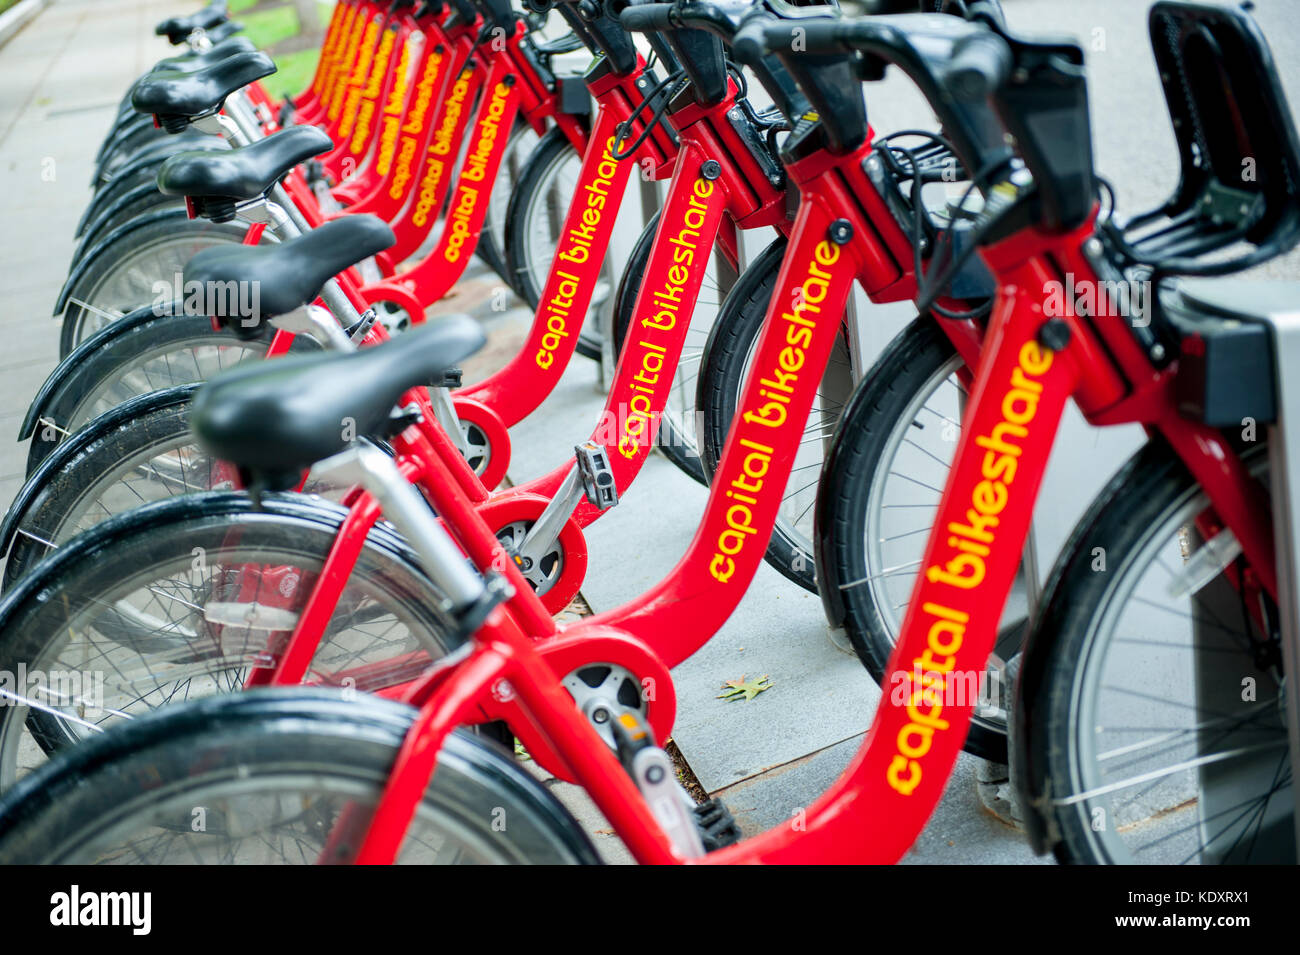 usa-wasington-dc-dc-capitol-bikeshare-rental-bicycles-in-the-nations-KDXRX1.jpg